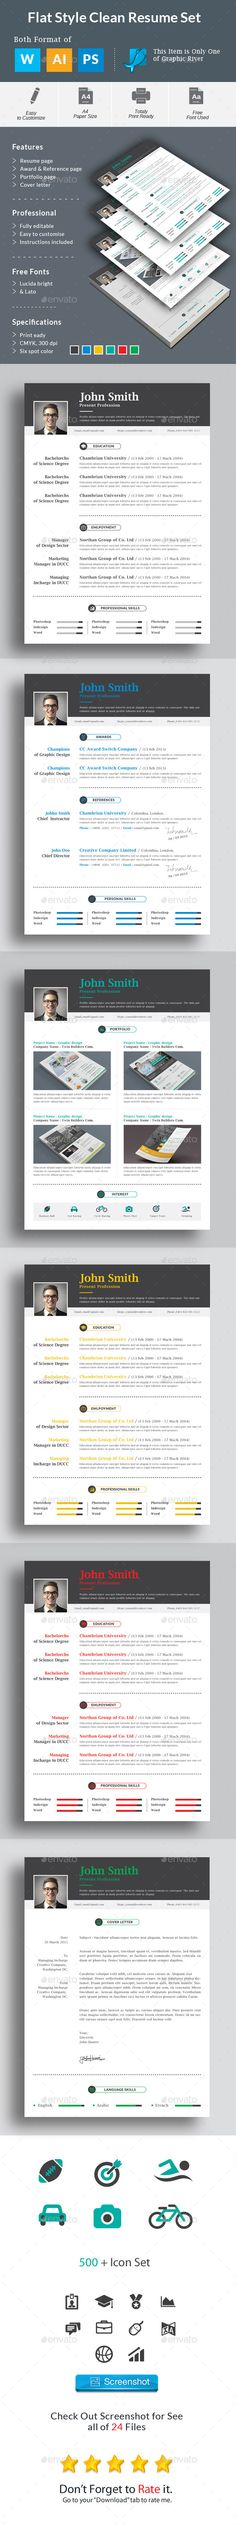 flat style clean resume set template design download httpgraphicriver